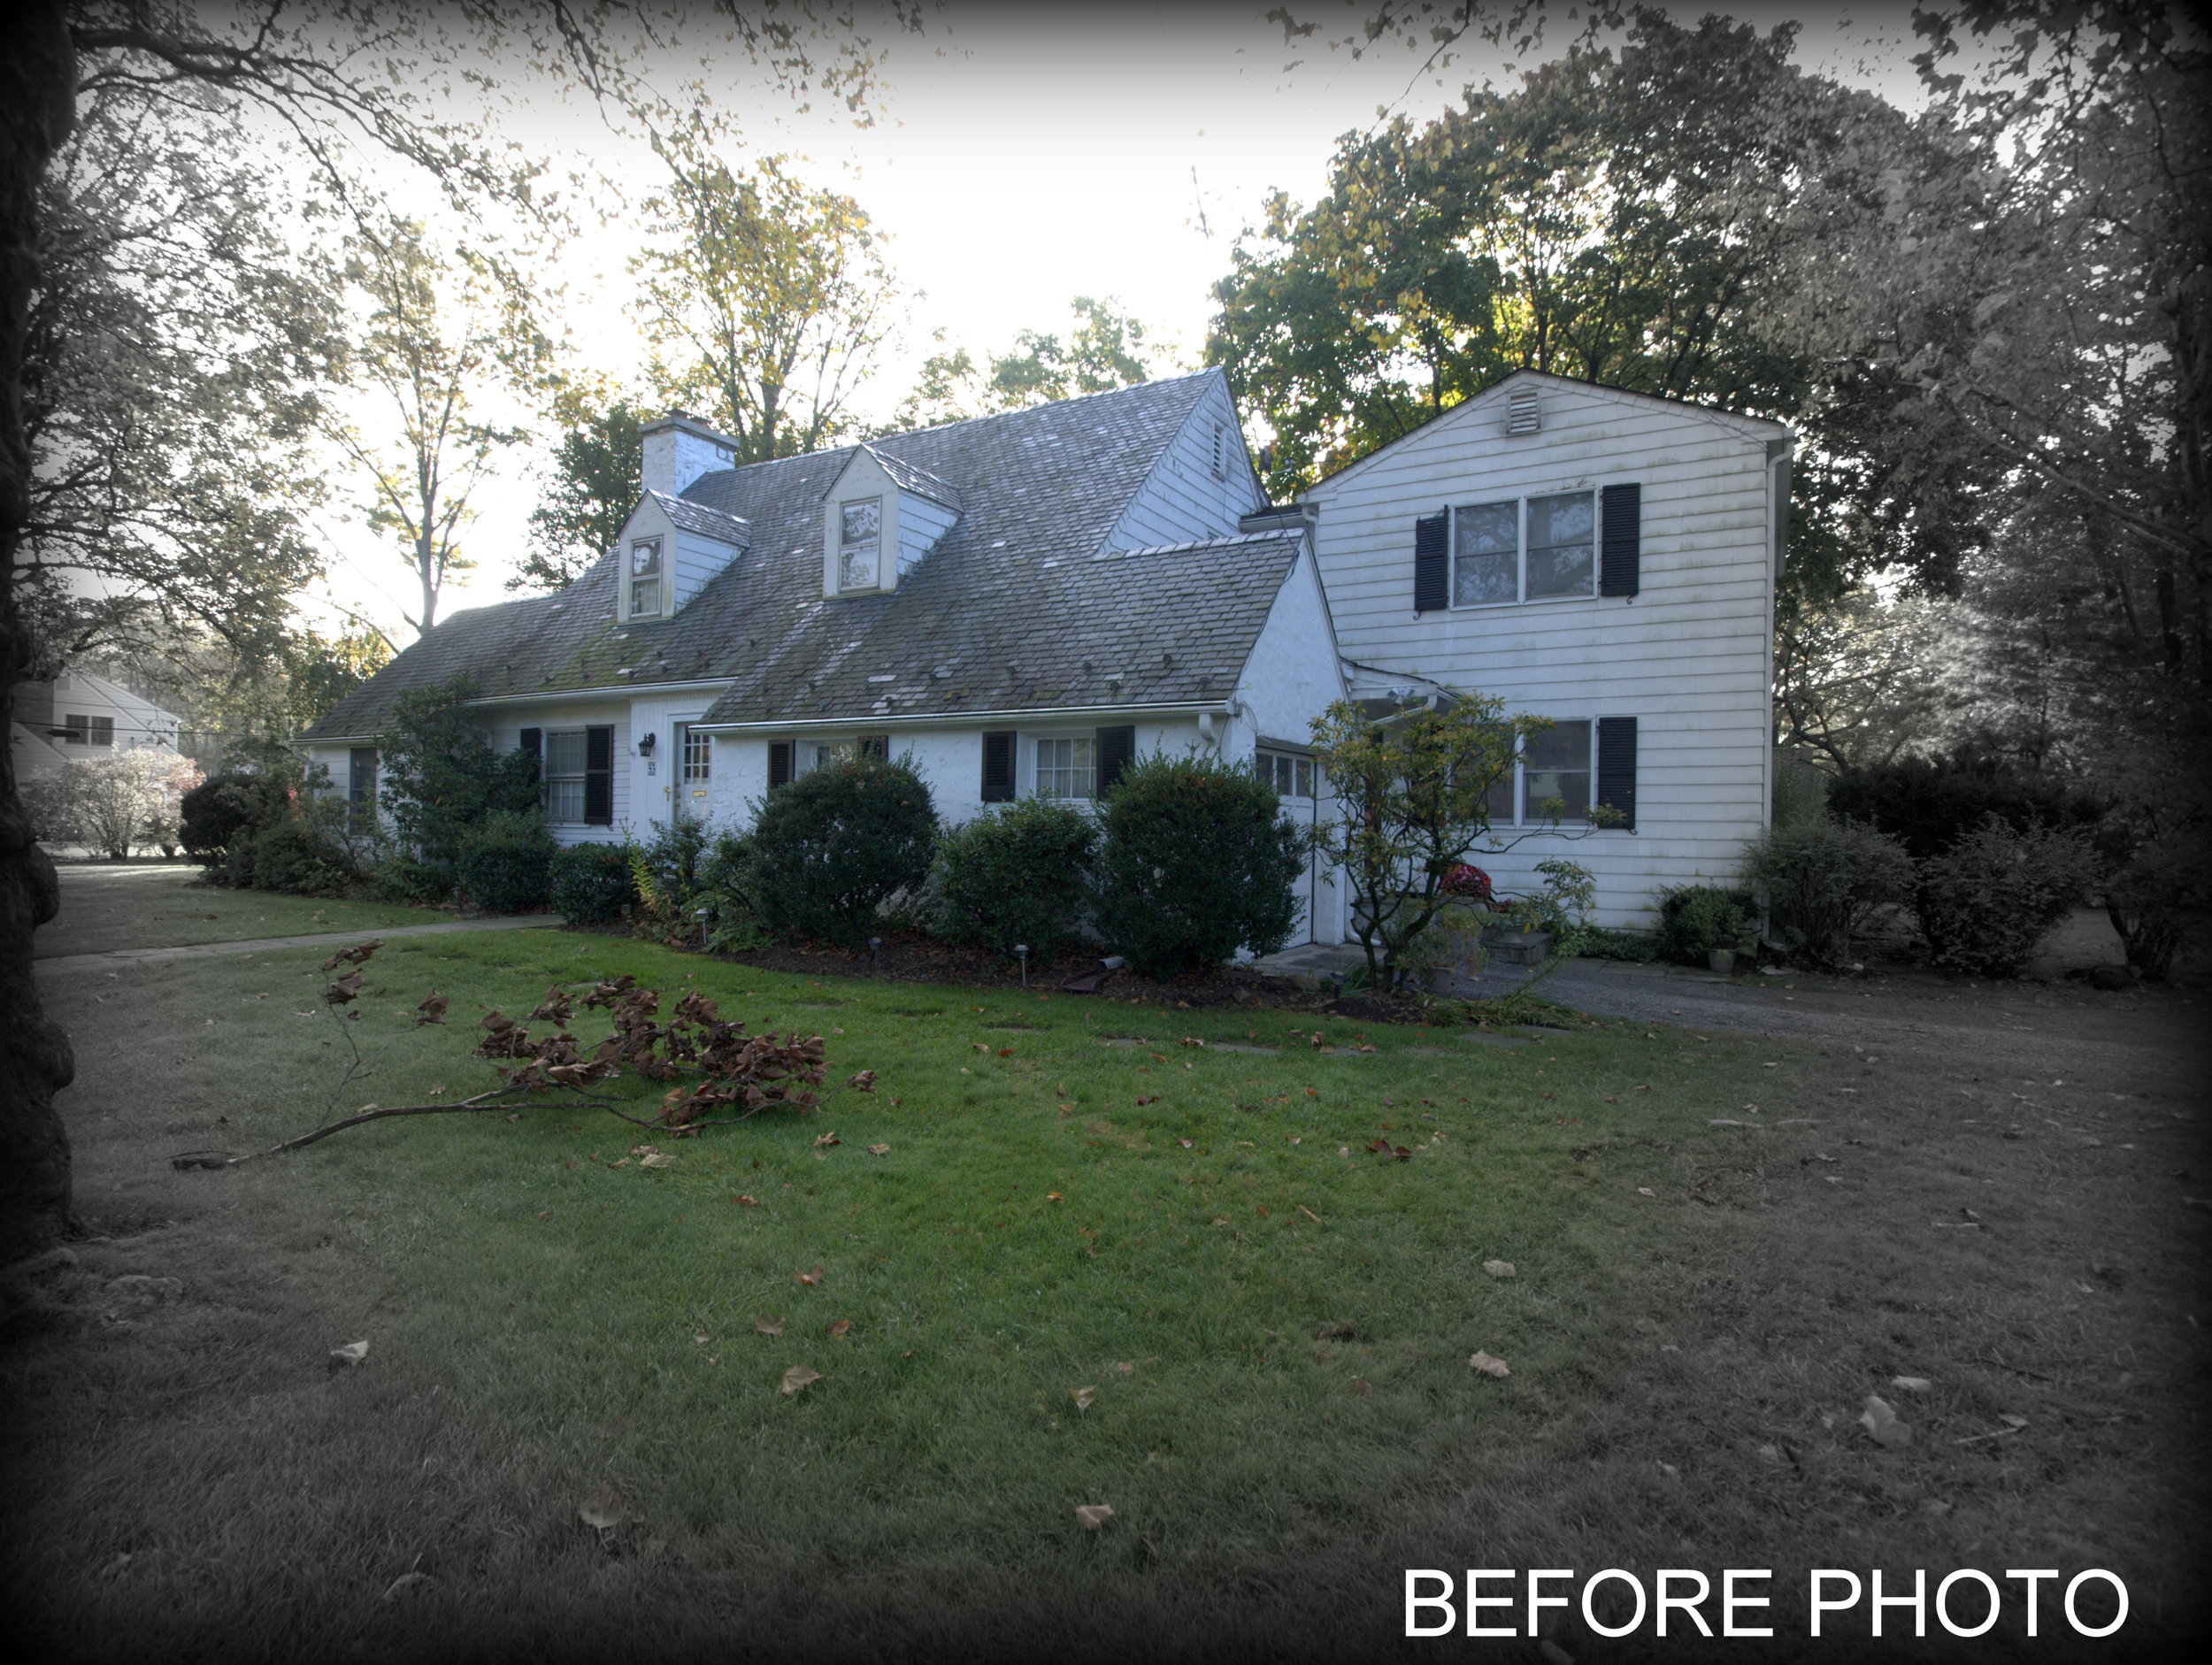 The primary two story addition comprised of a new full basement. We also expanded the basement under a prior addition built with only a crawl space in 1975. The entire exterior cladding, windows, and roof were replace with the addition project.